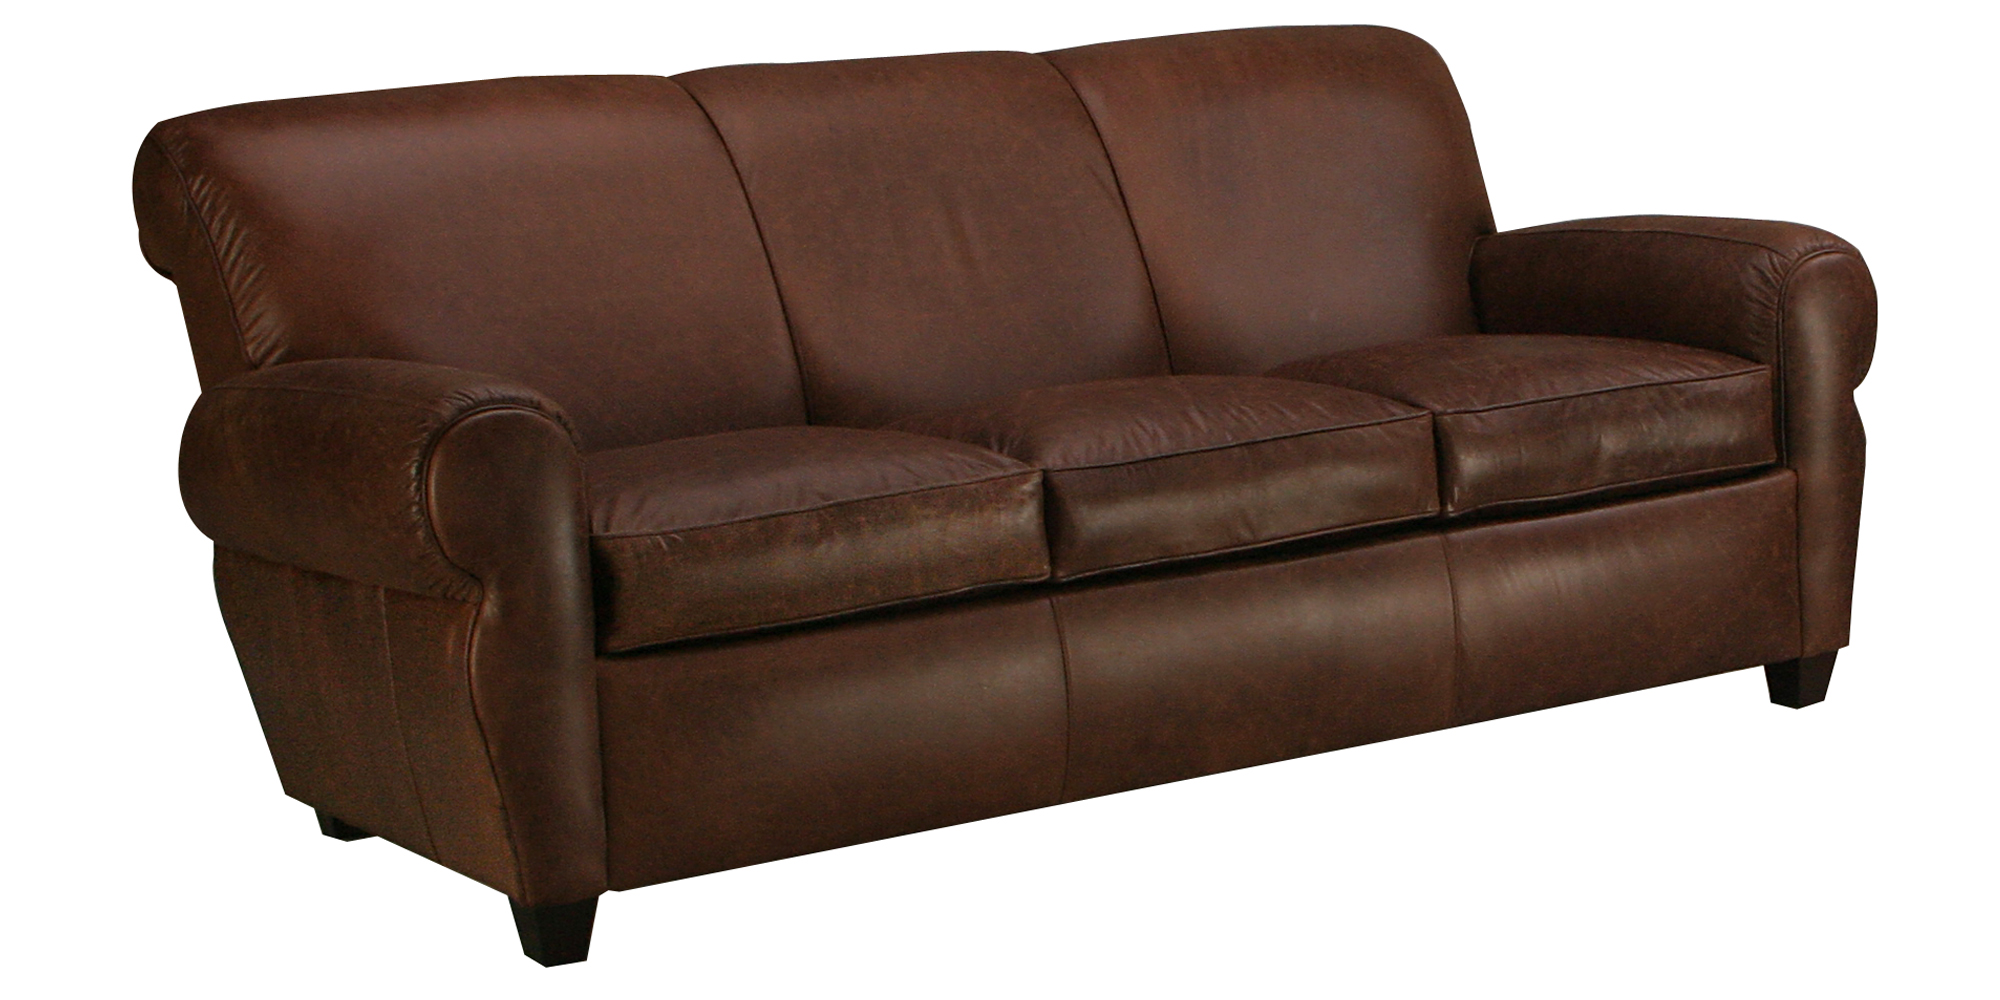 Leather Sofa Chair Vintage Club Leather Sofa Collection Like Manhattan Club